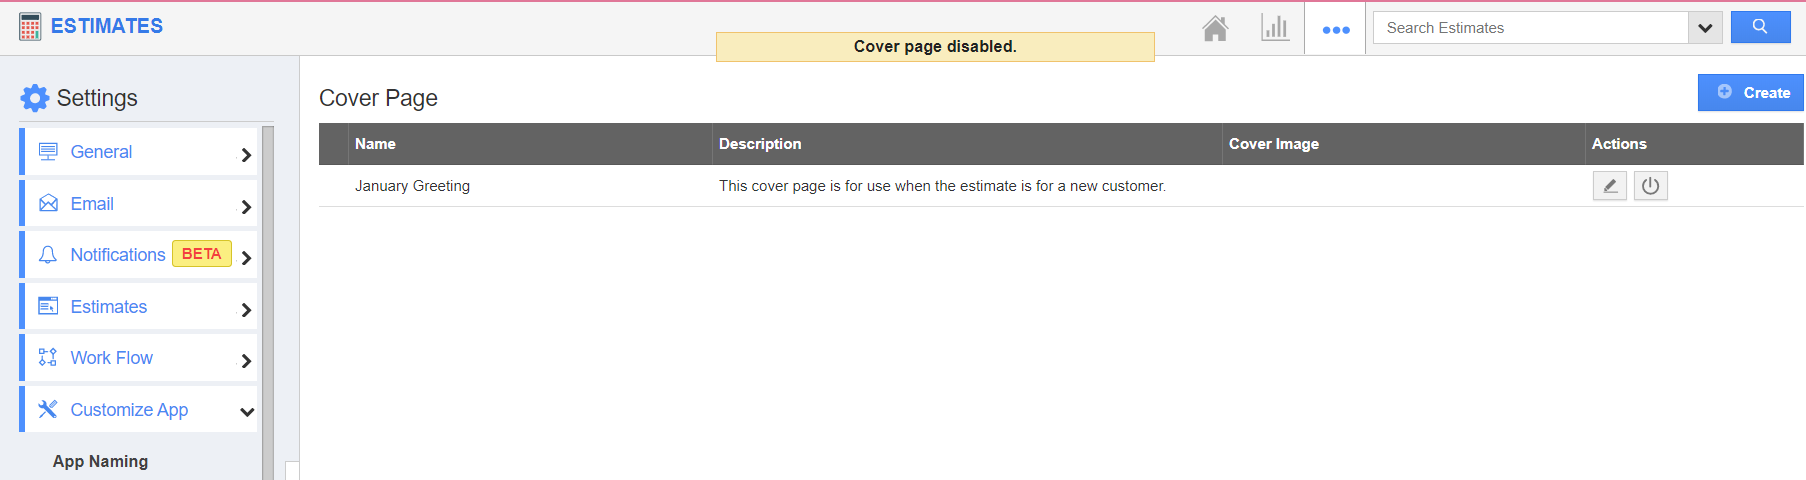 Disable Cover Page